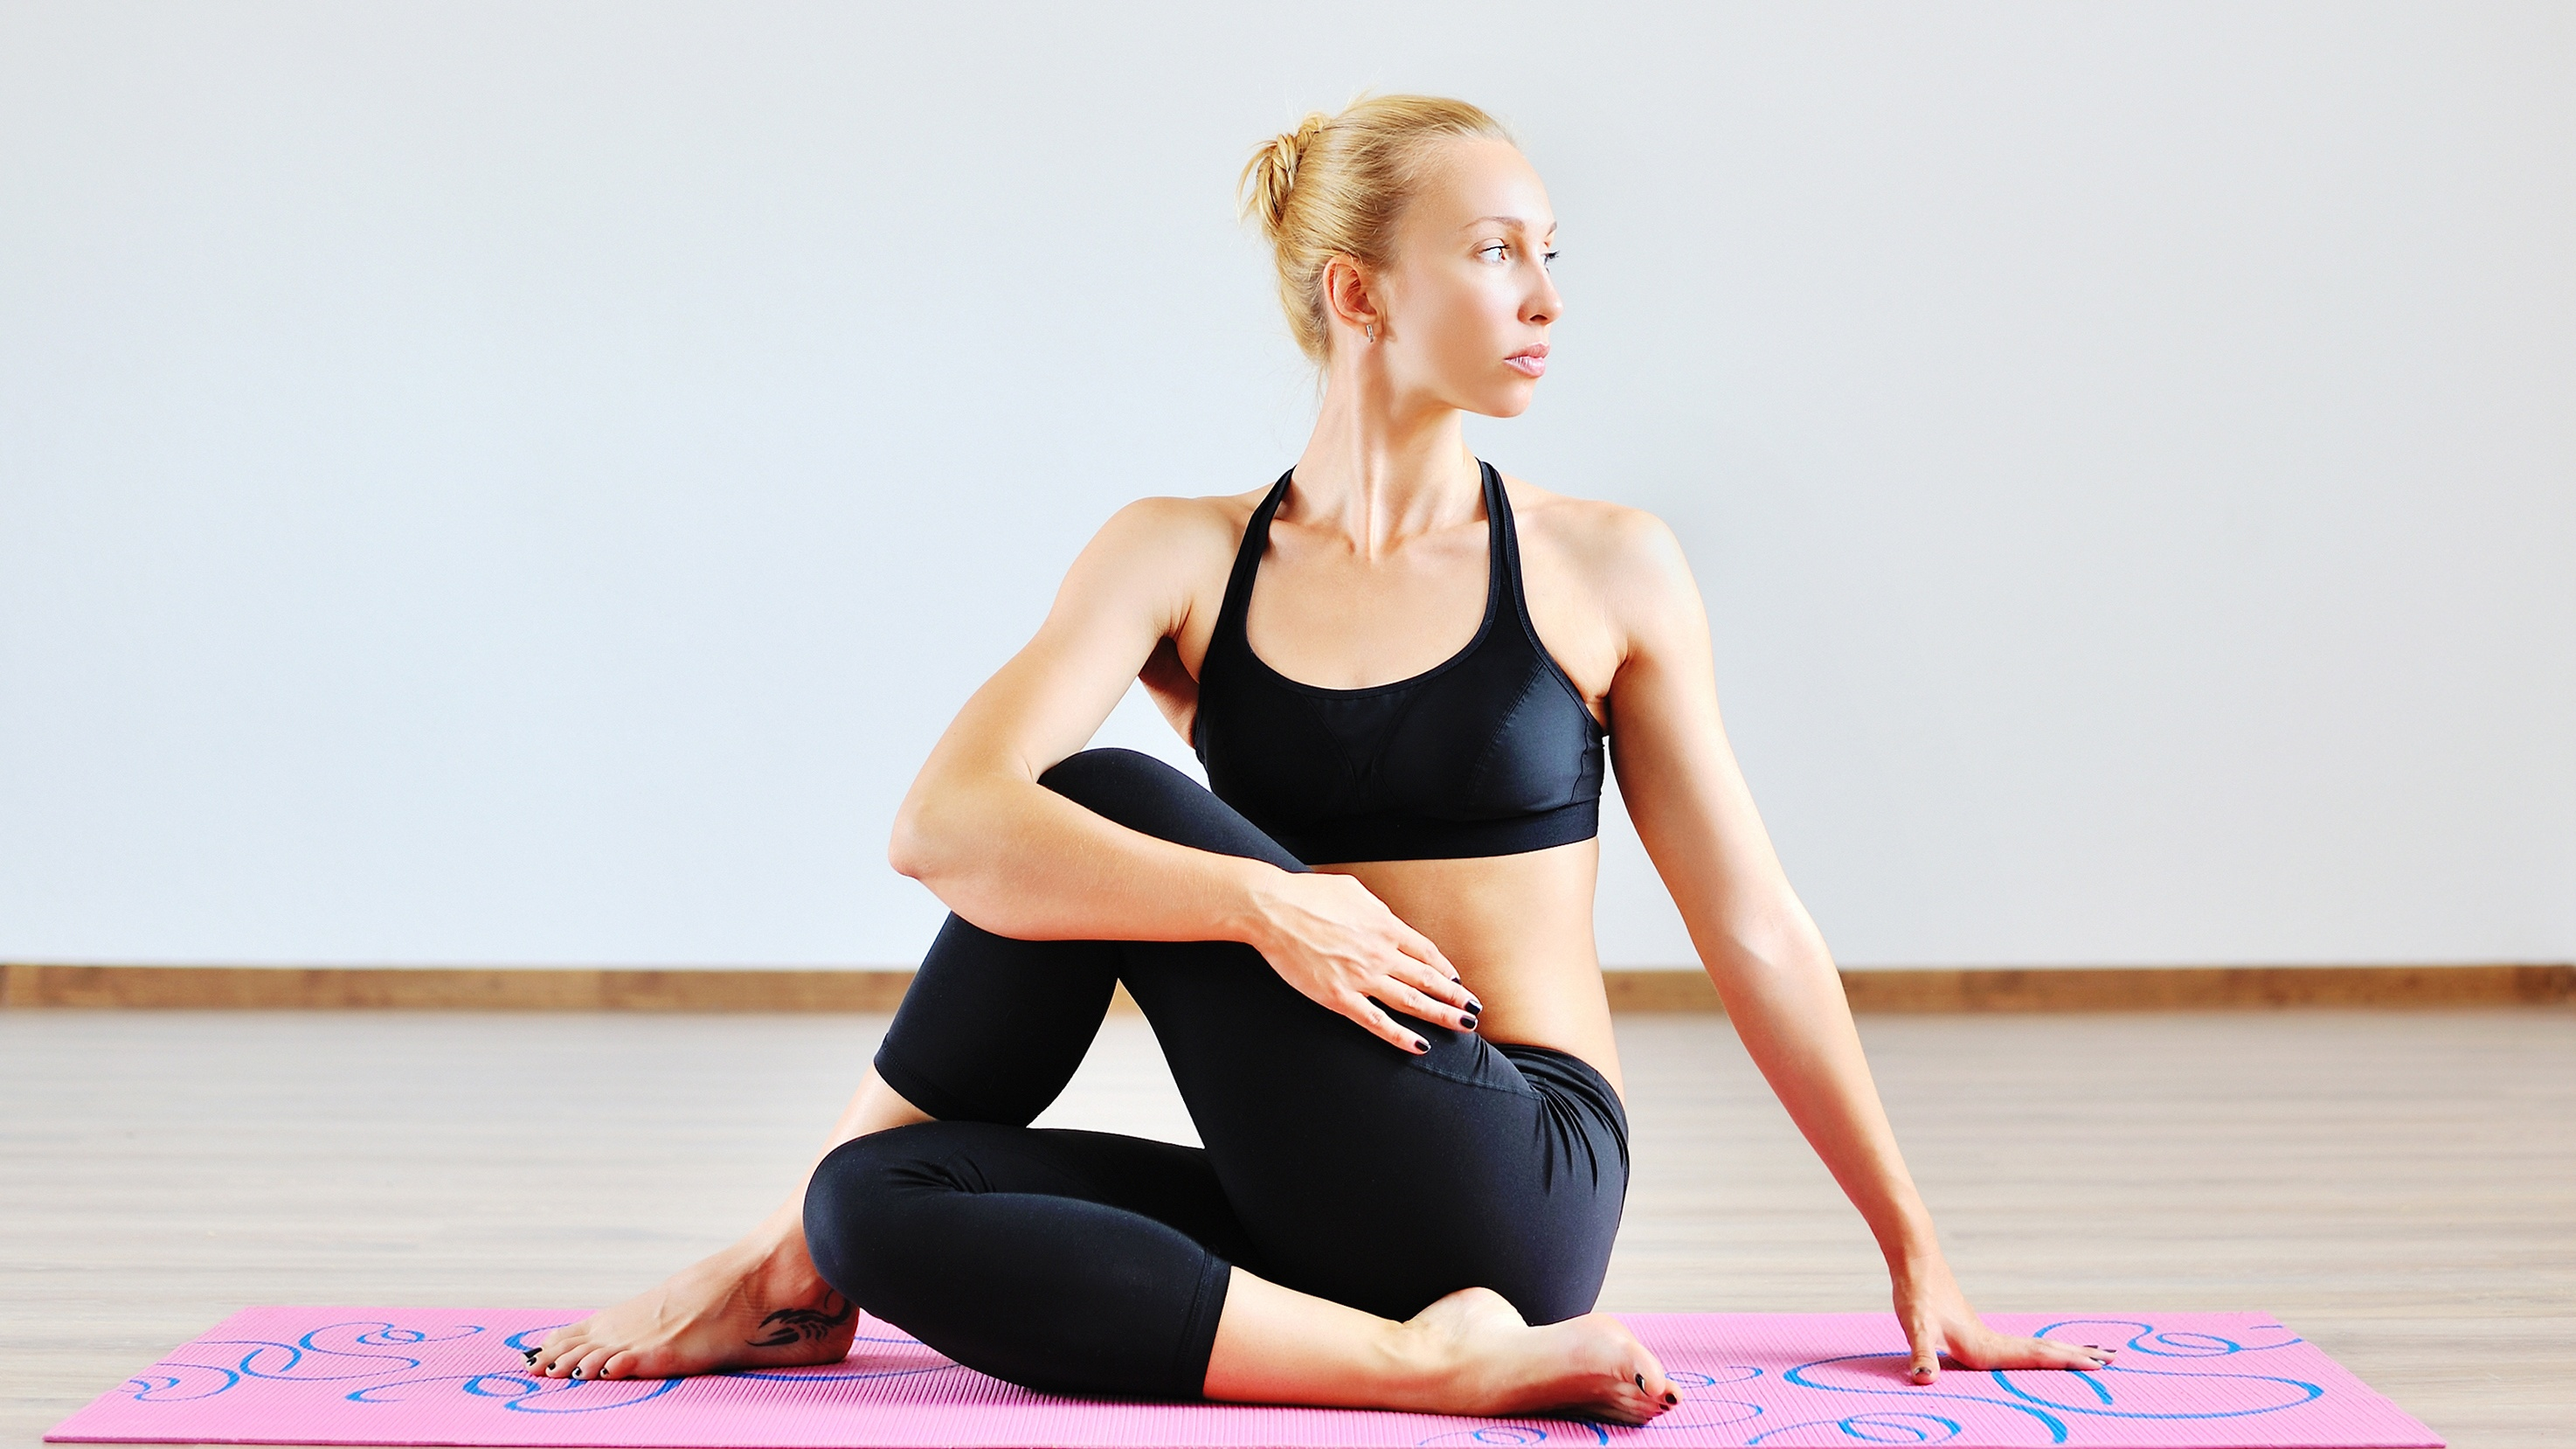 Generic photo of woman doing yoga pose (ThinkStock/PA)